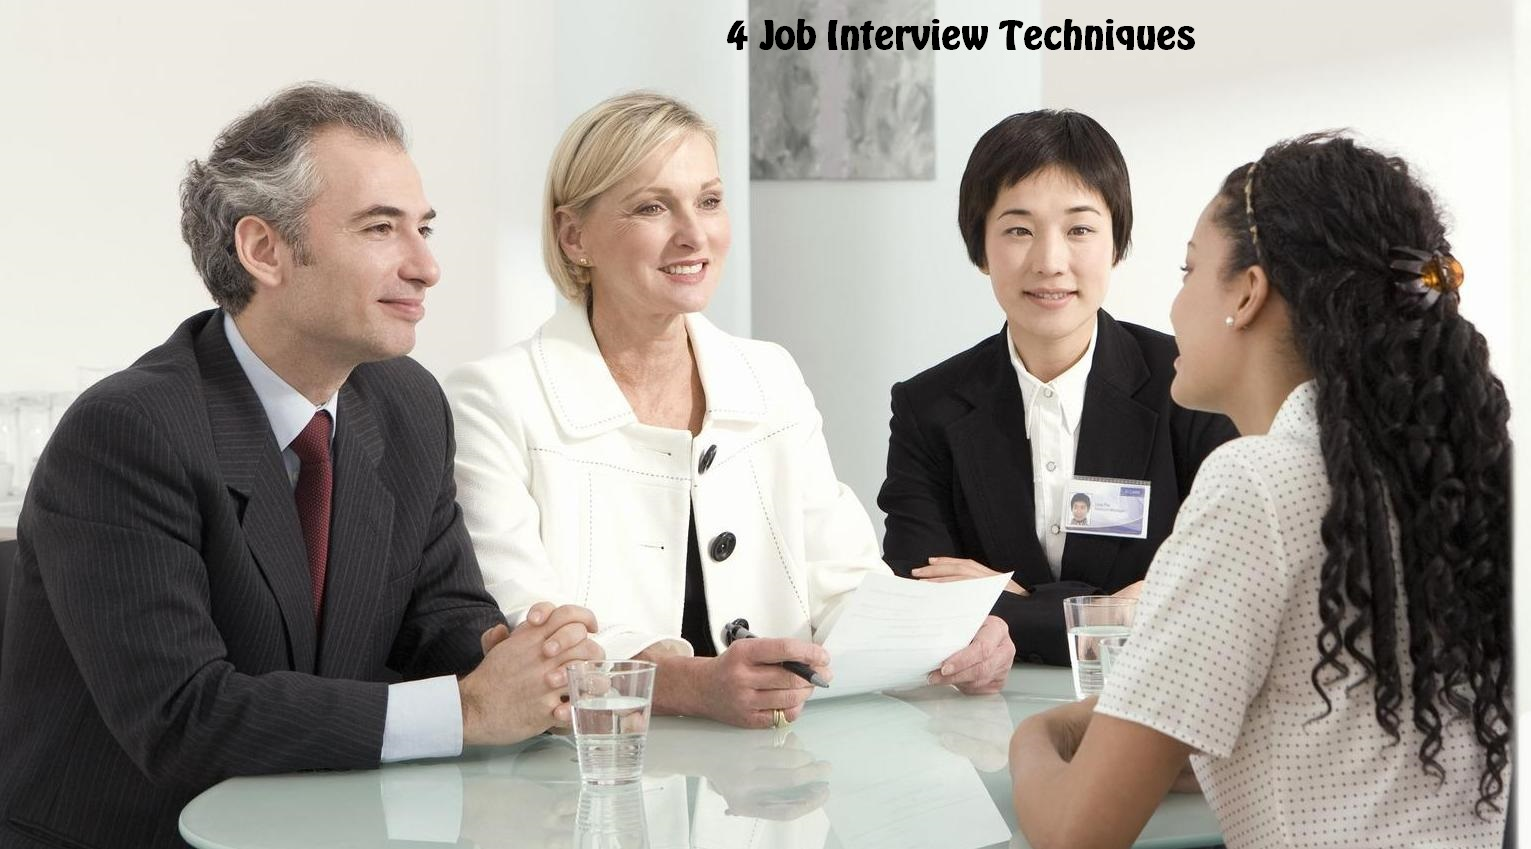 4 Job Interview Techniques